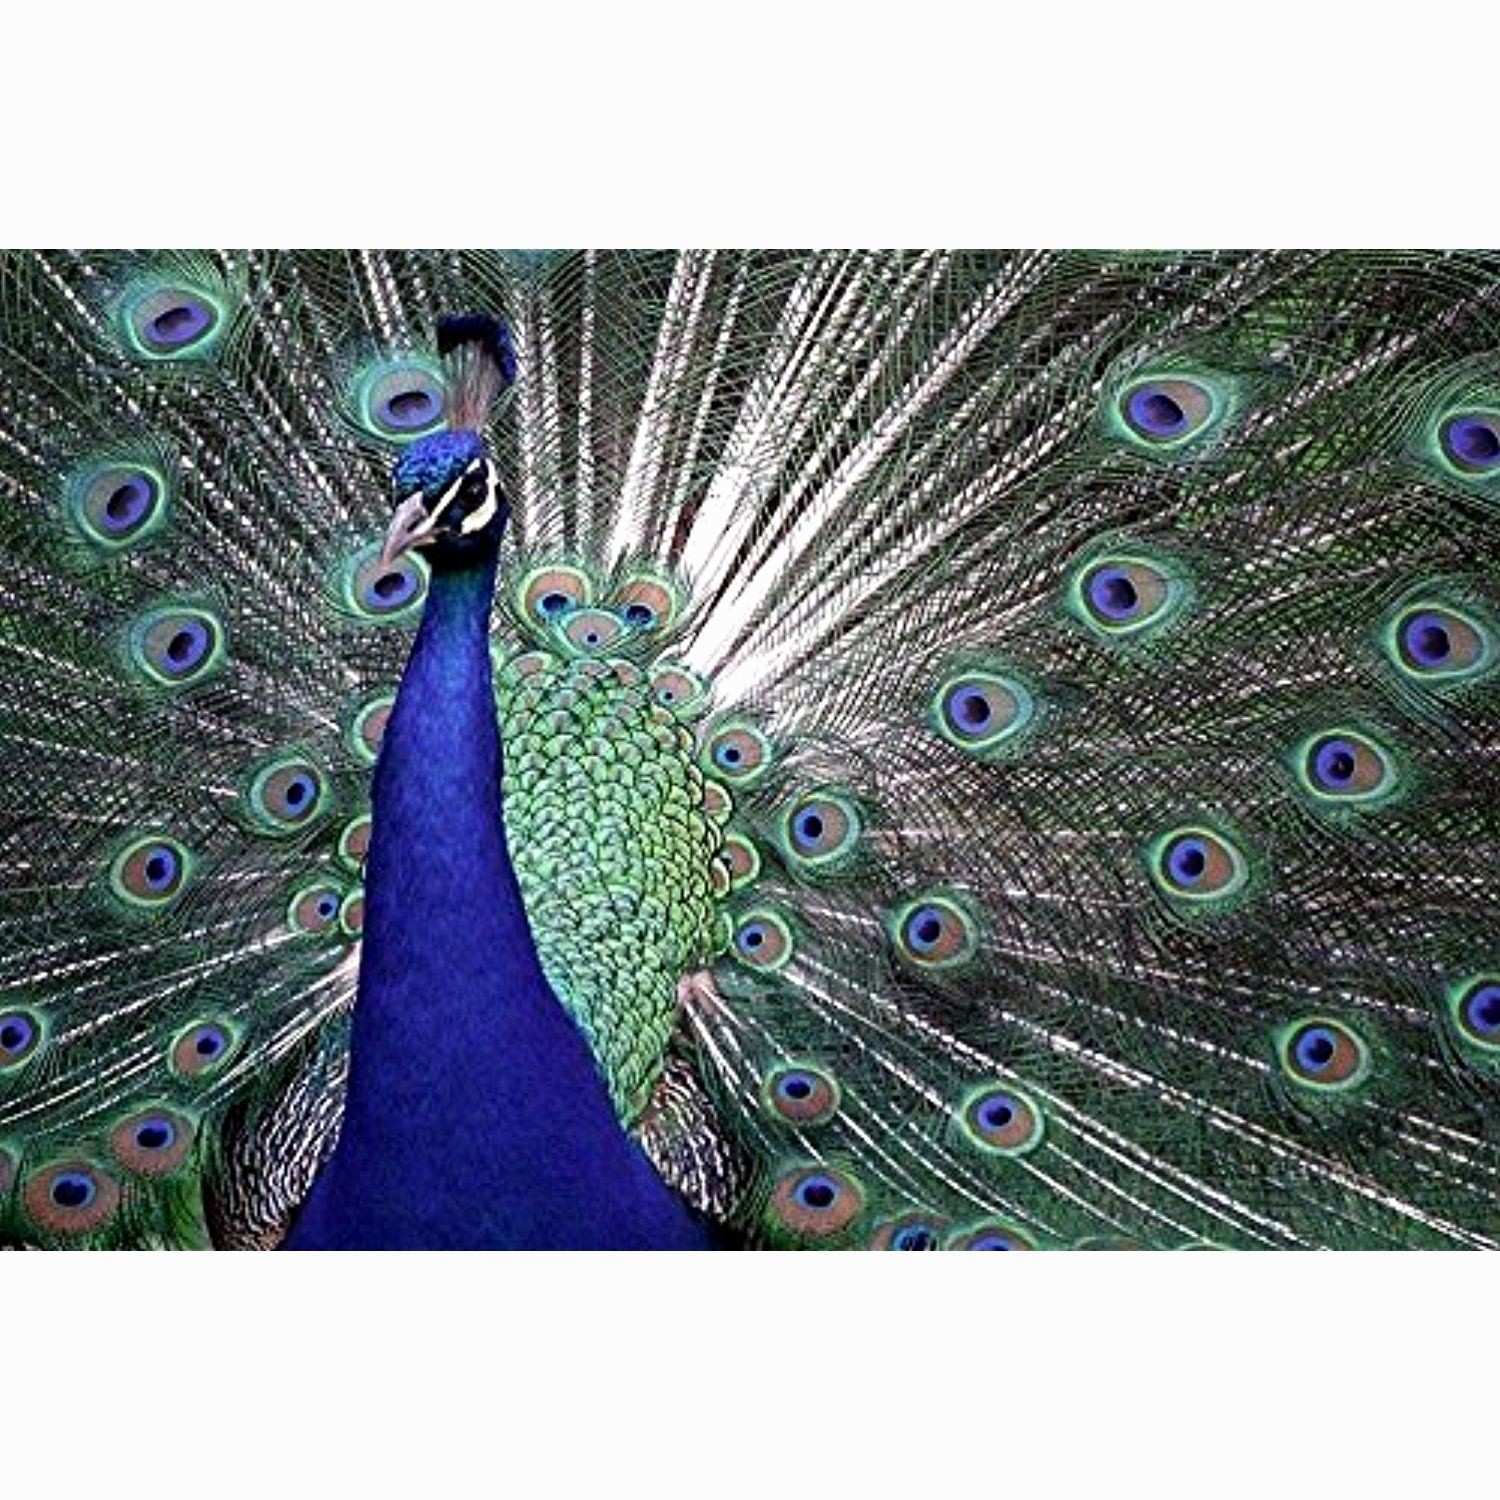 Aqua Home Decor New Peacock Shows Its Feathers Art Print Poster Wall